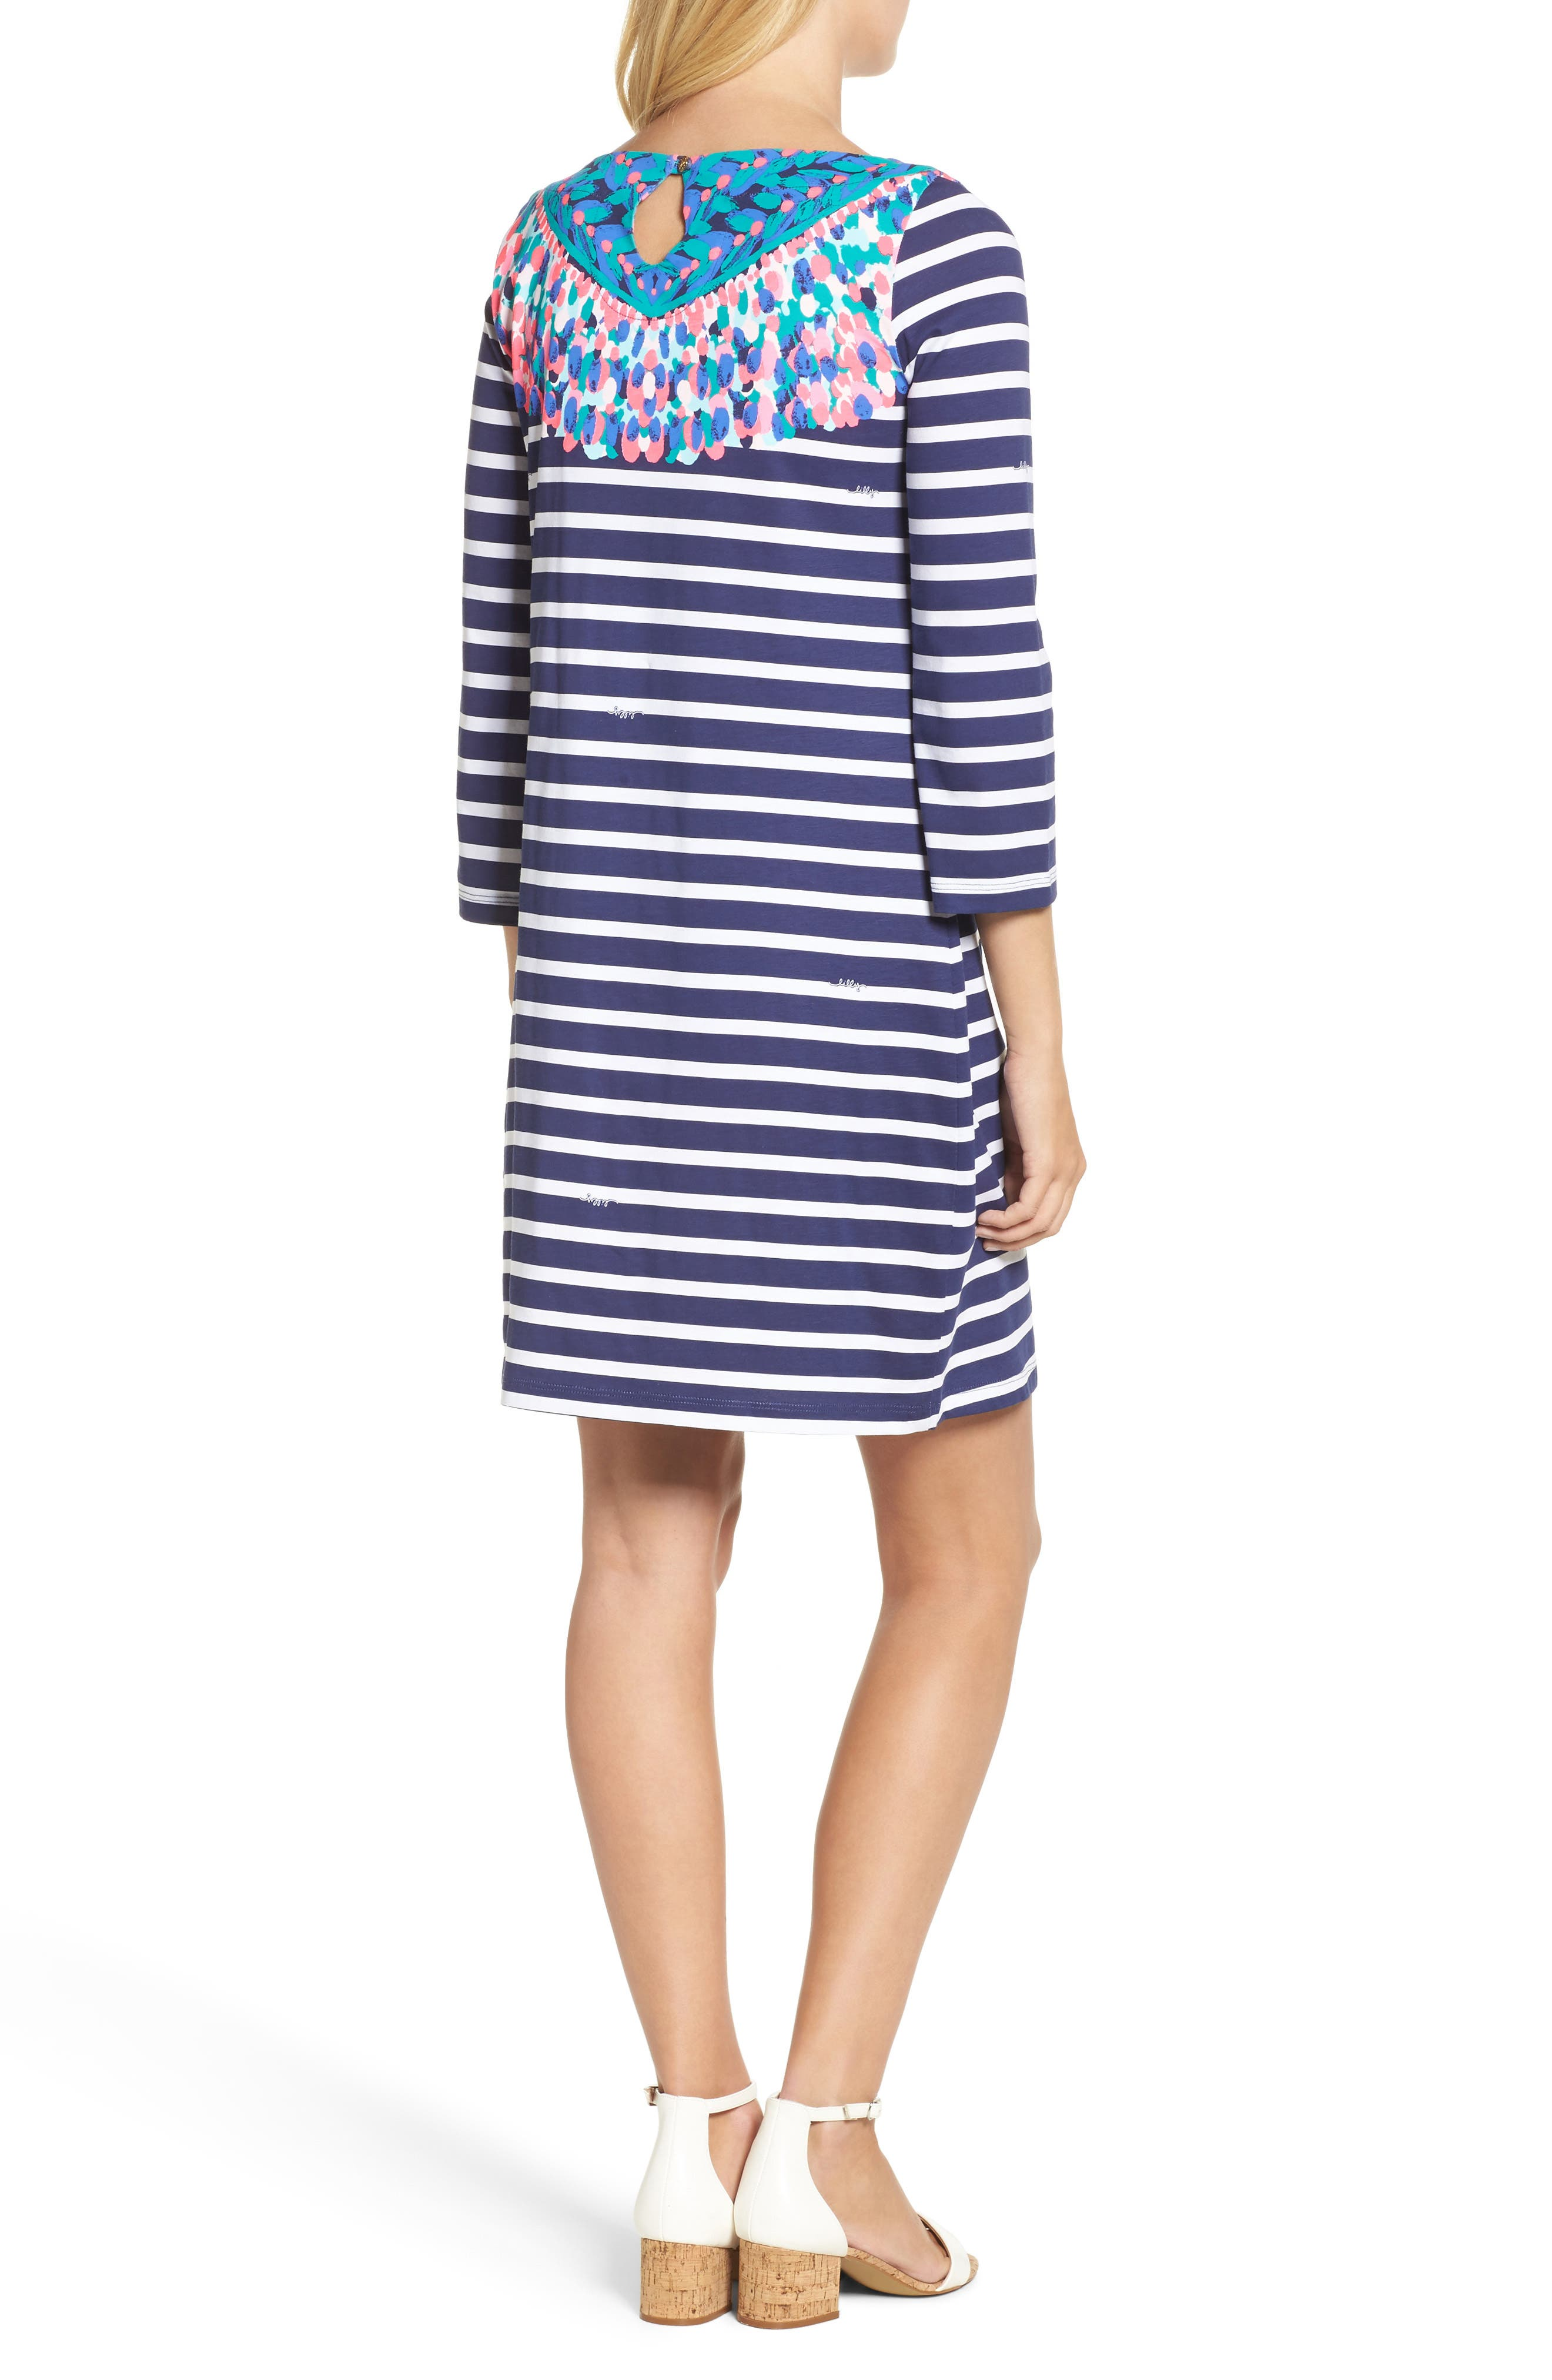 Bay Shift Dress,                             Alternate thumbnail 2, color,                             Bright Navy Island Medallion